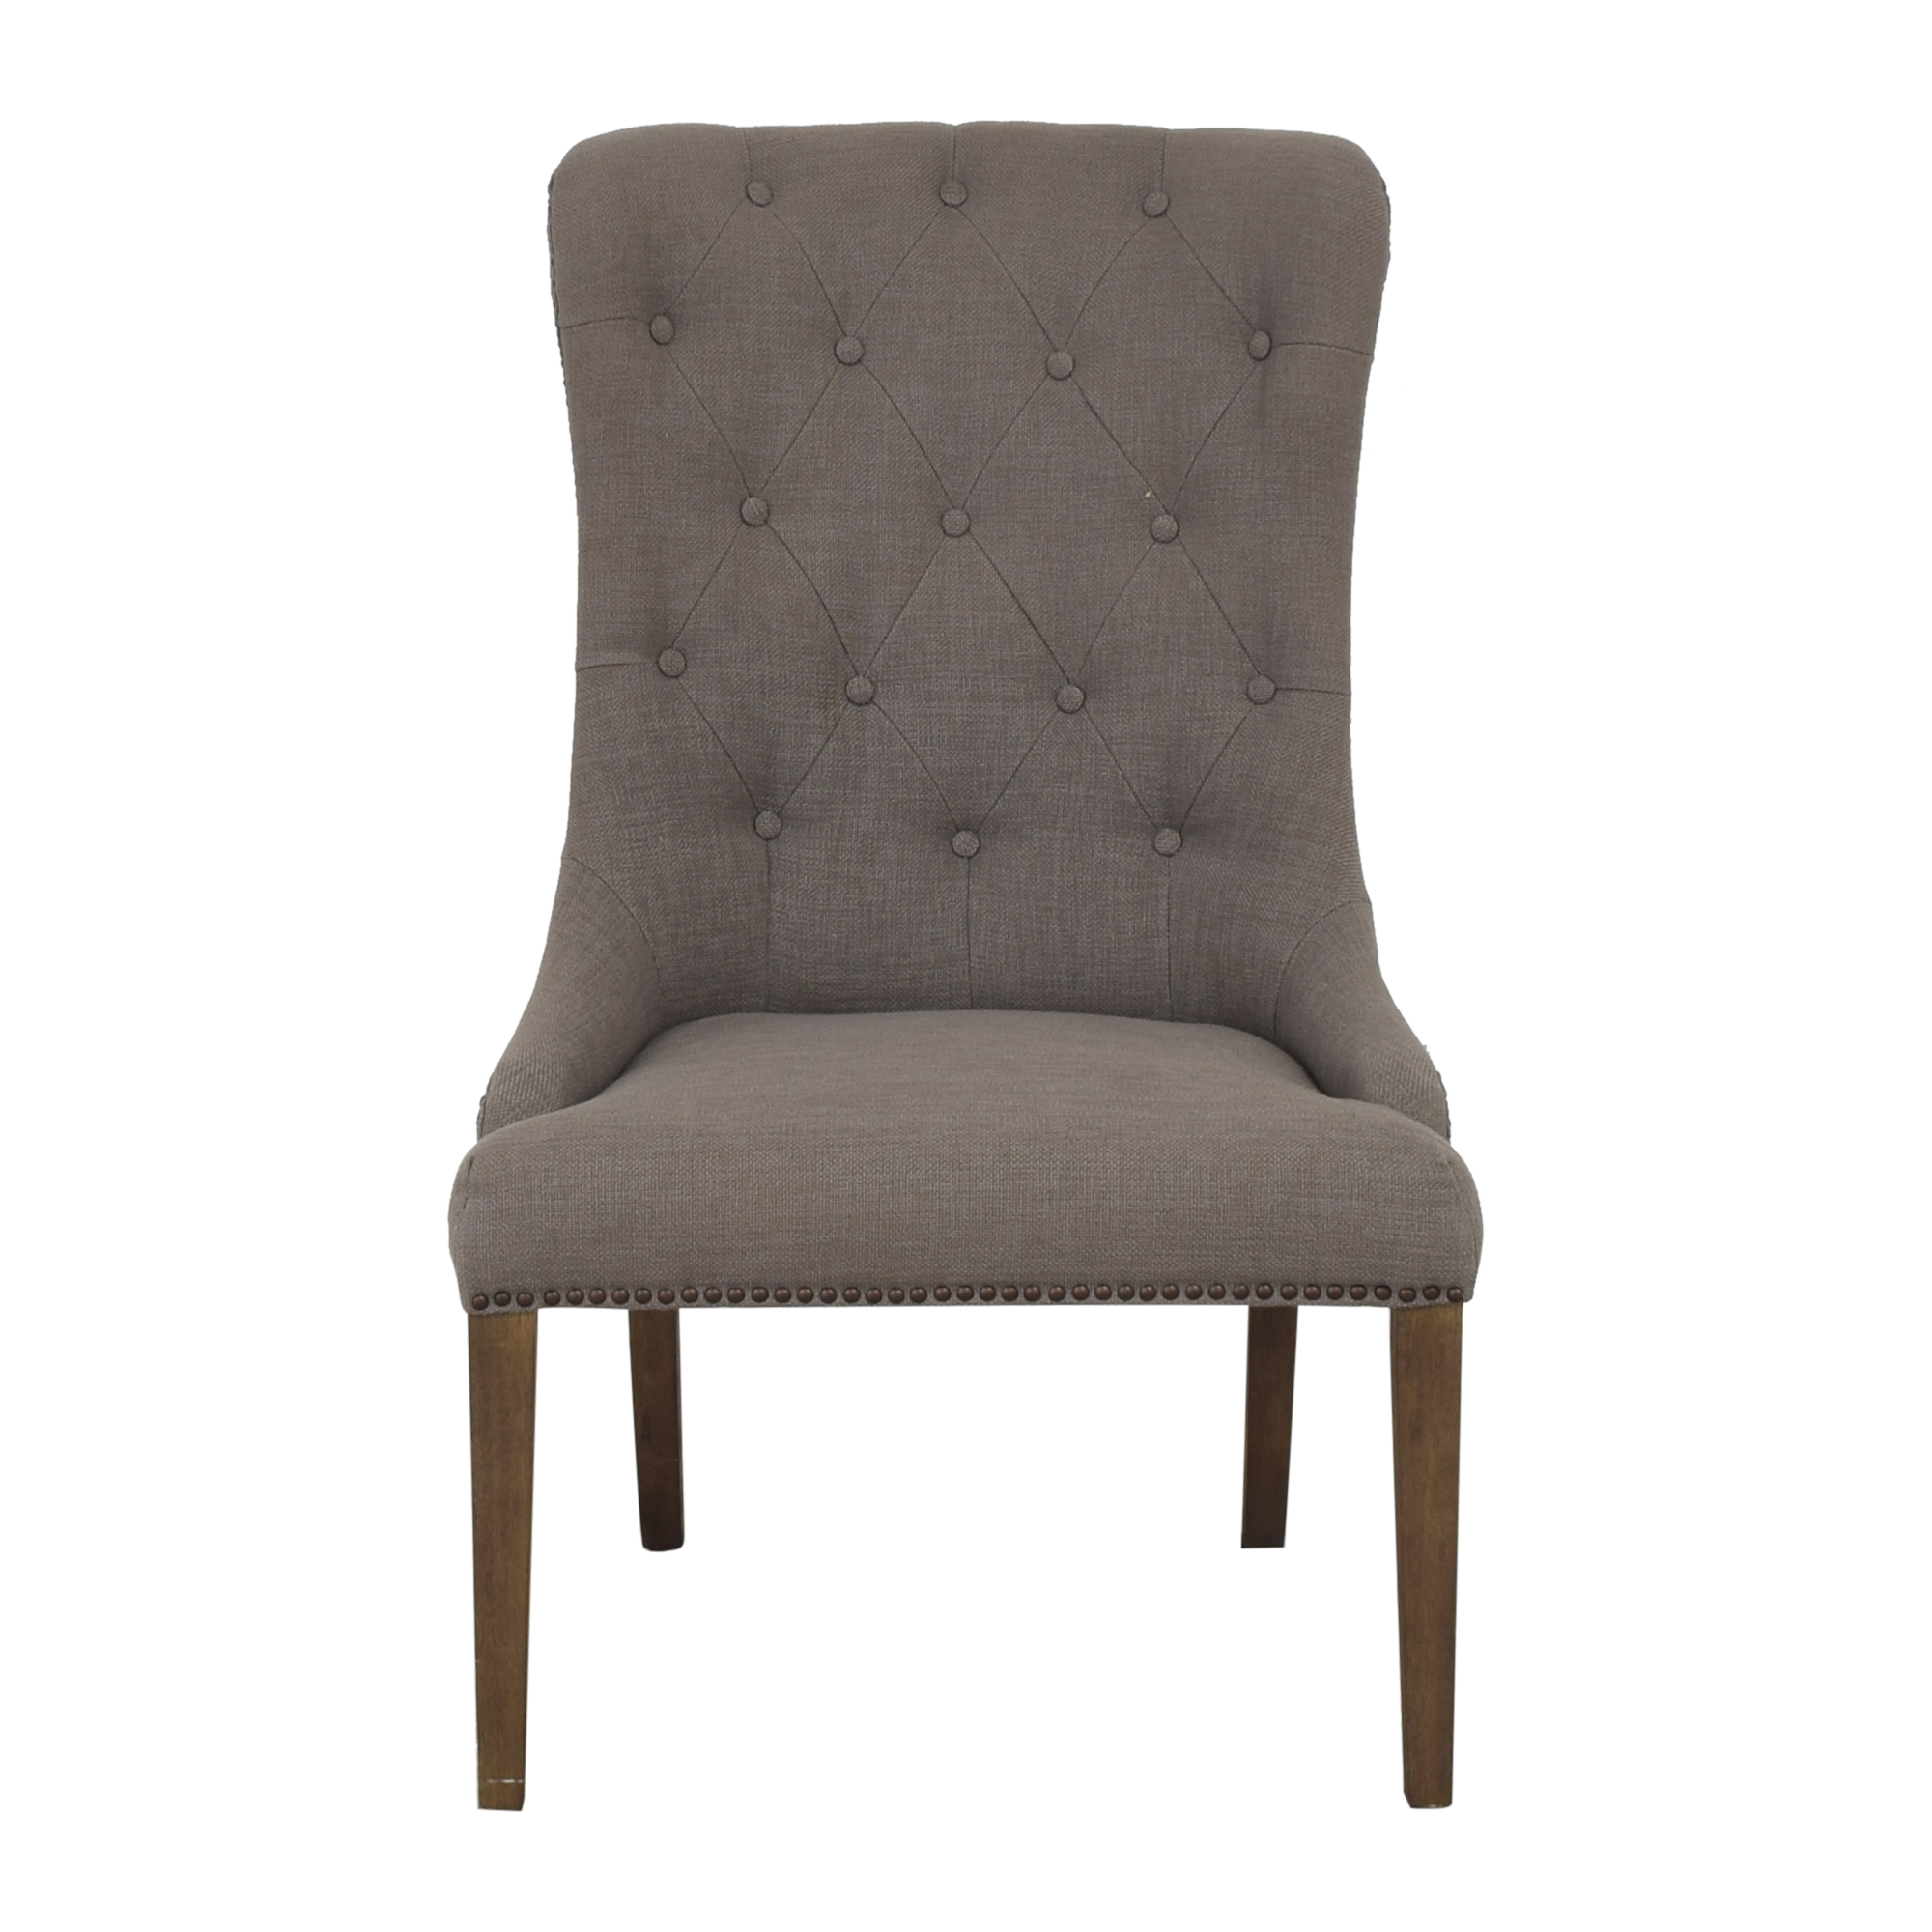 Four Hands Four Hands Elouise Dining Chair Chairs